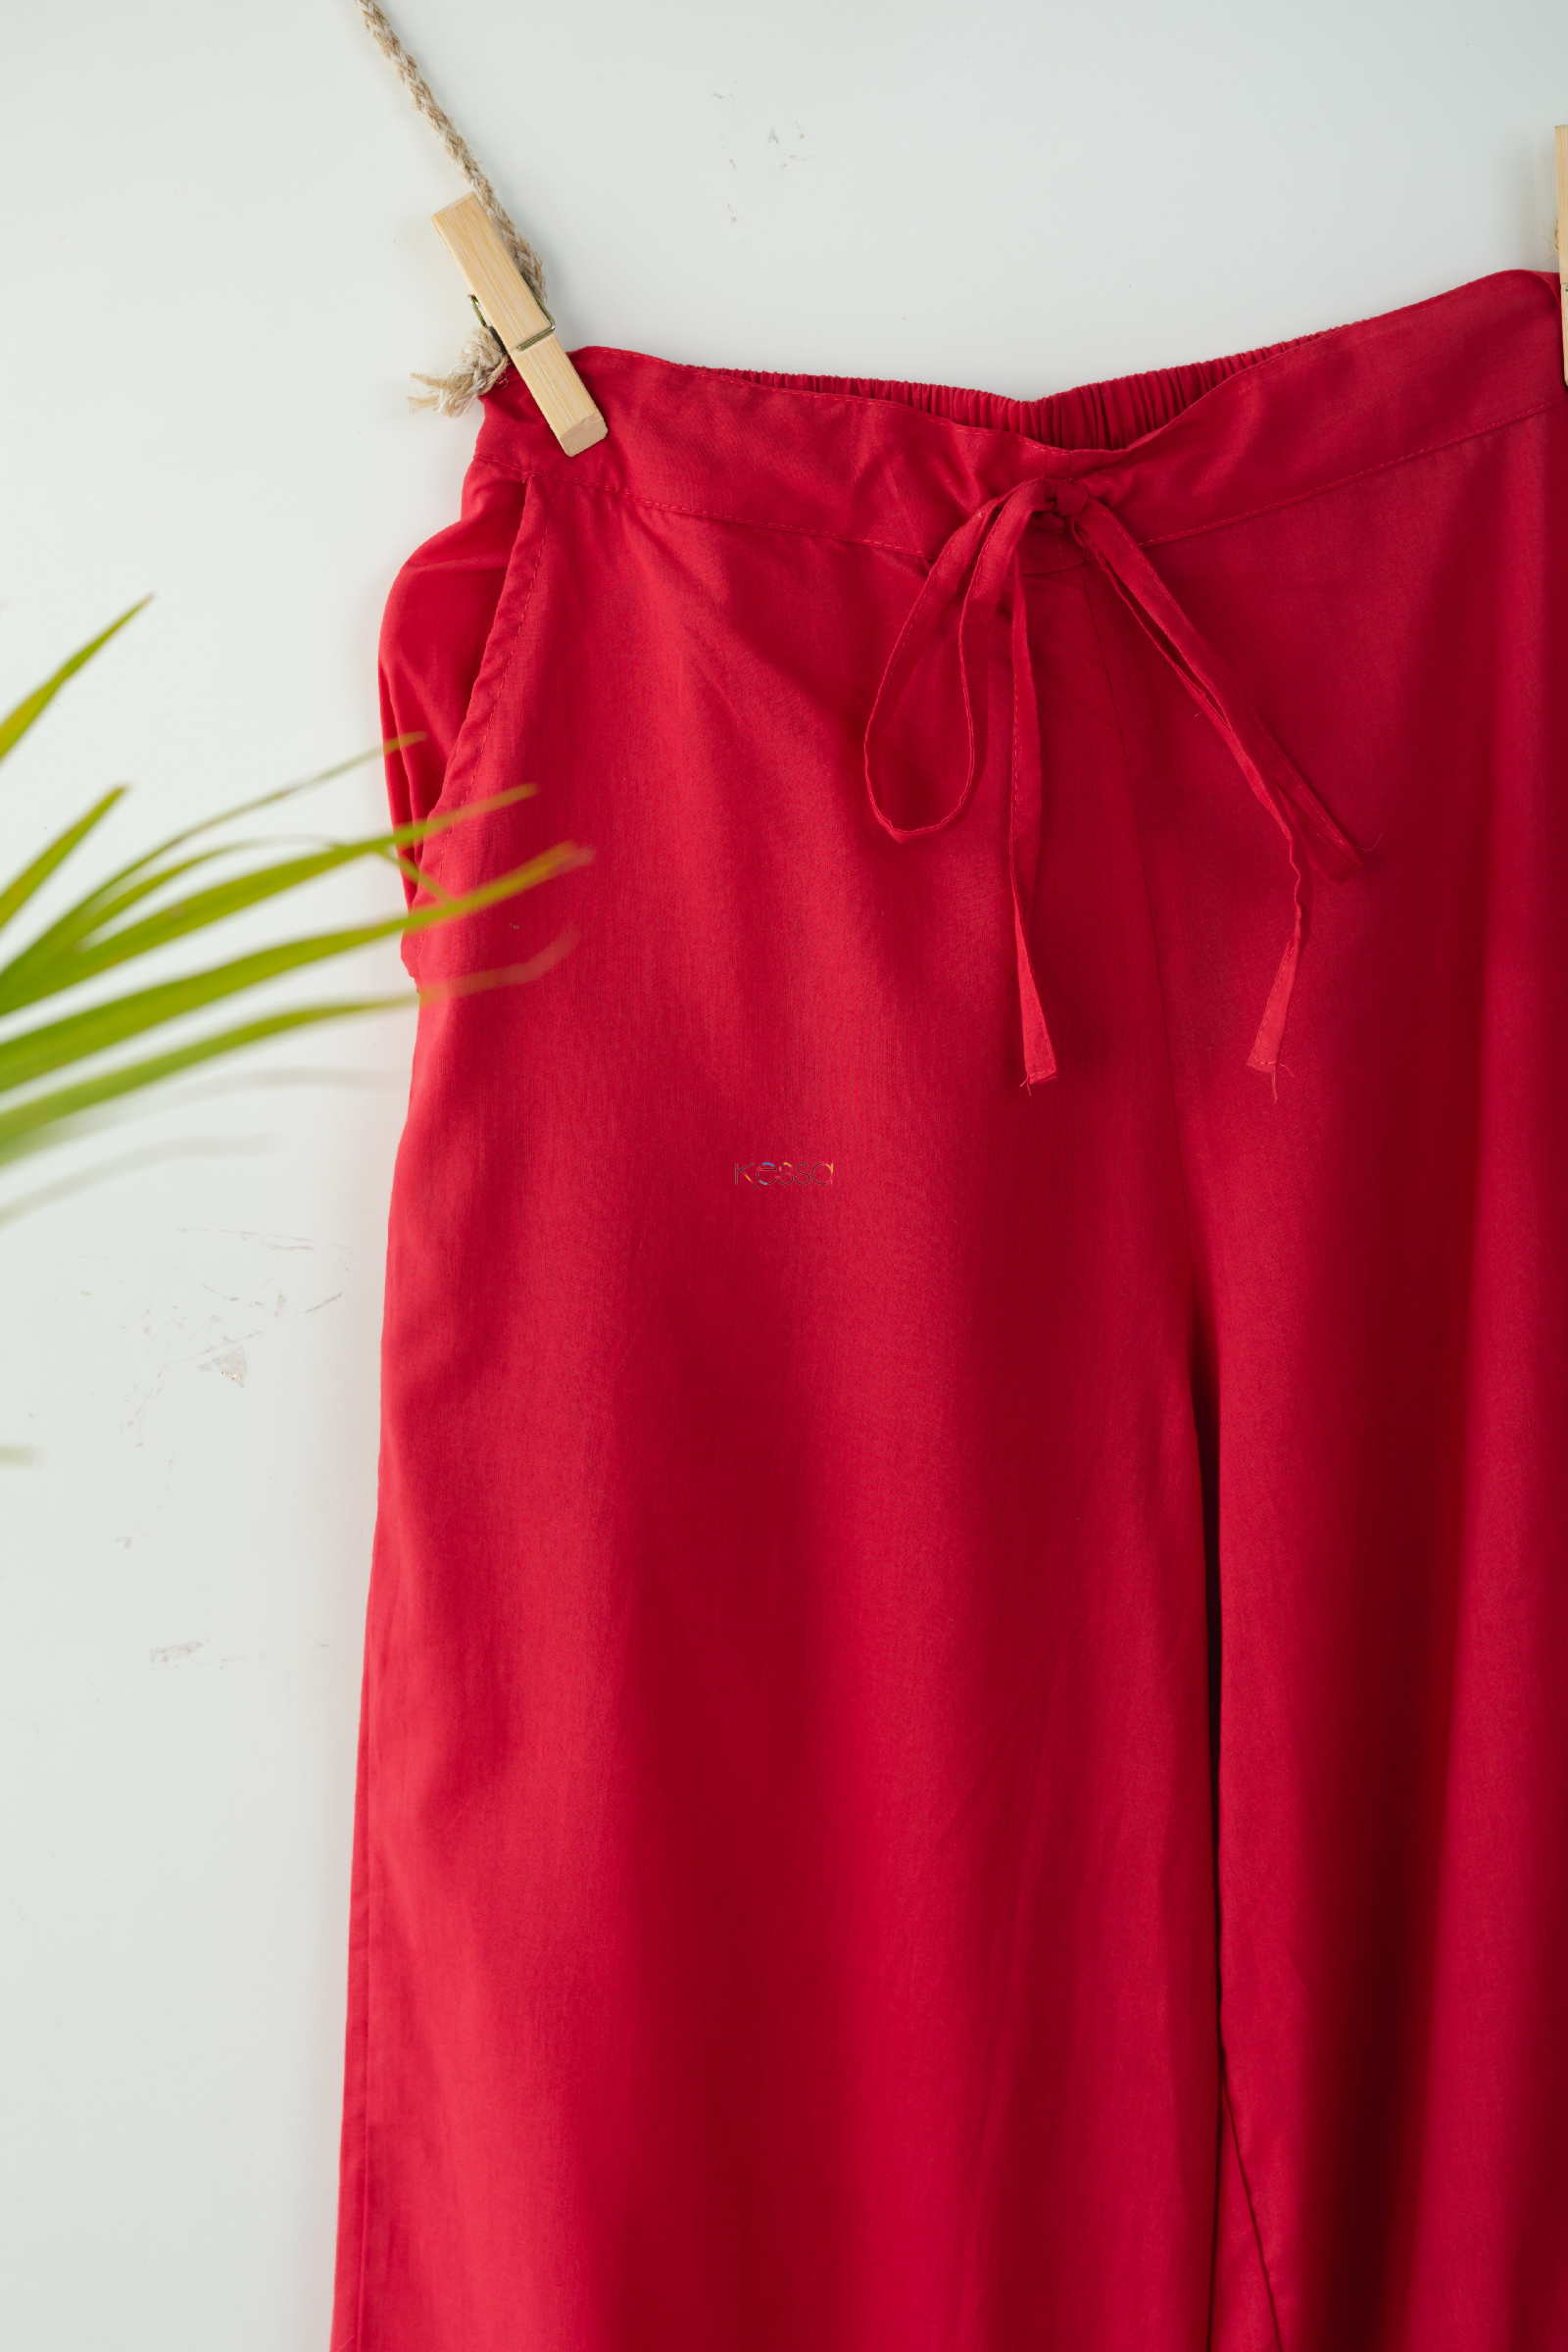 Wsp02 Palazzo With Pocket Elasticated Waist T Red Closeup Hd